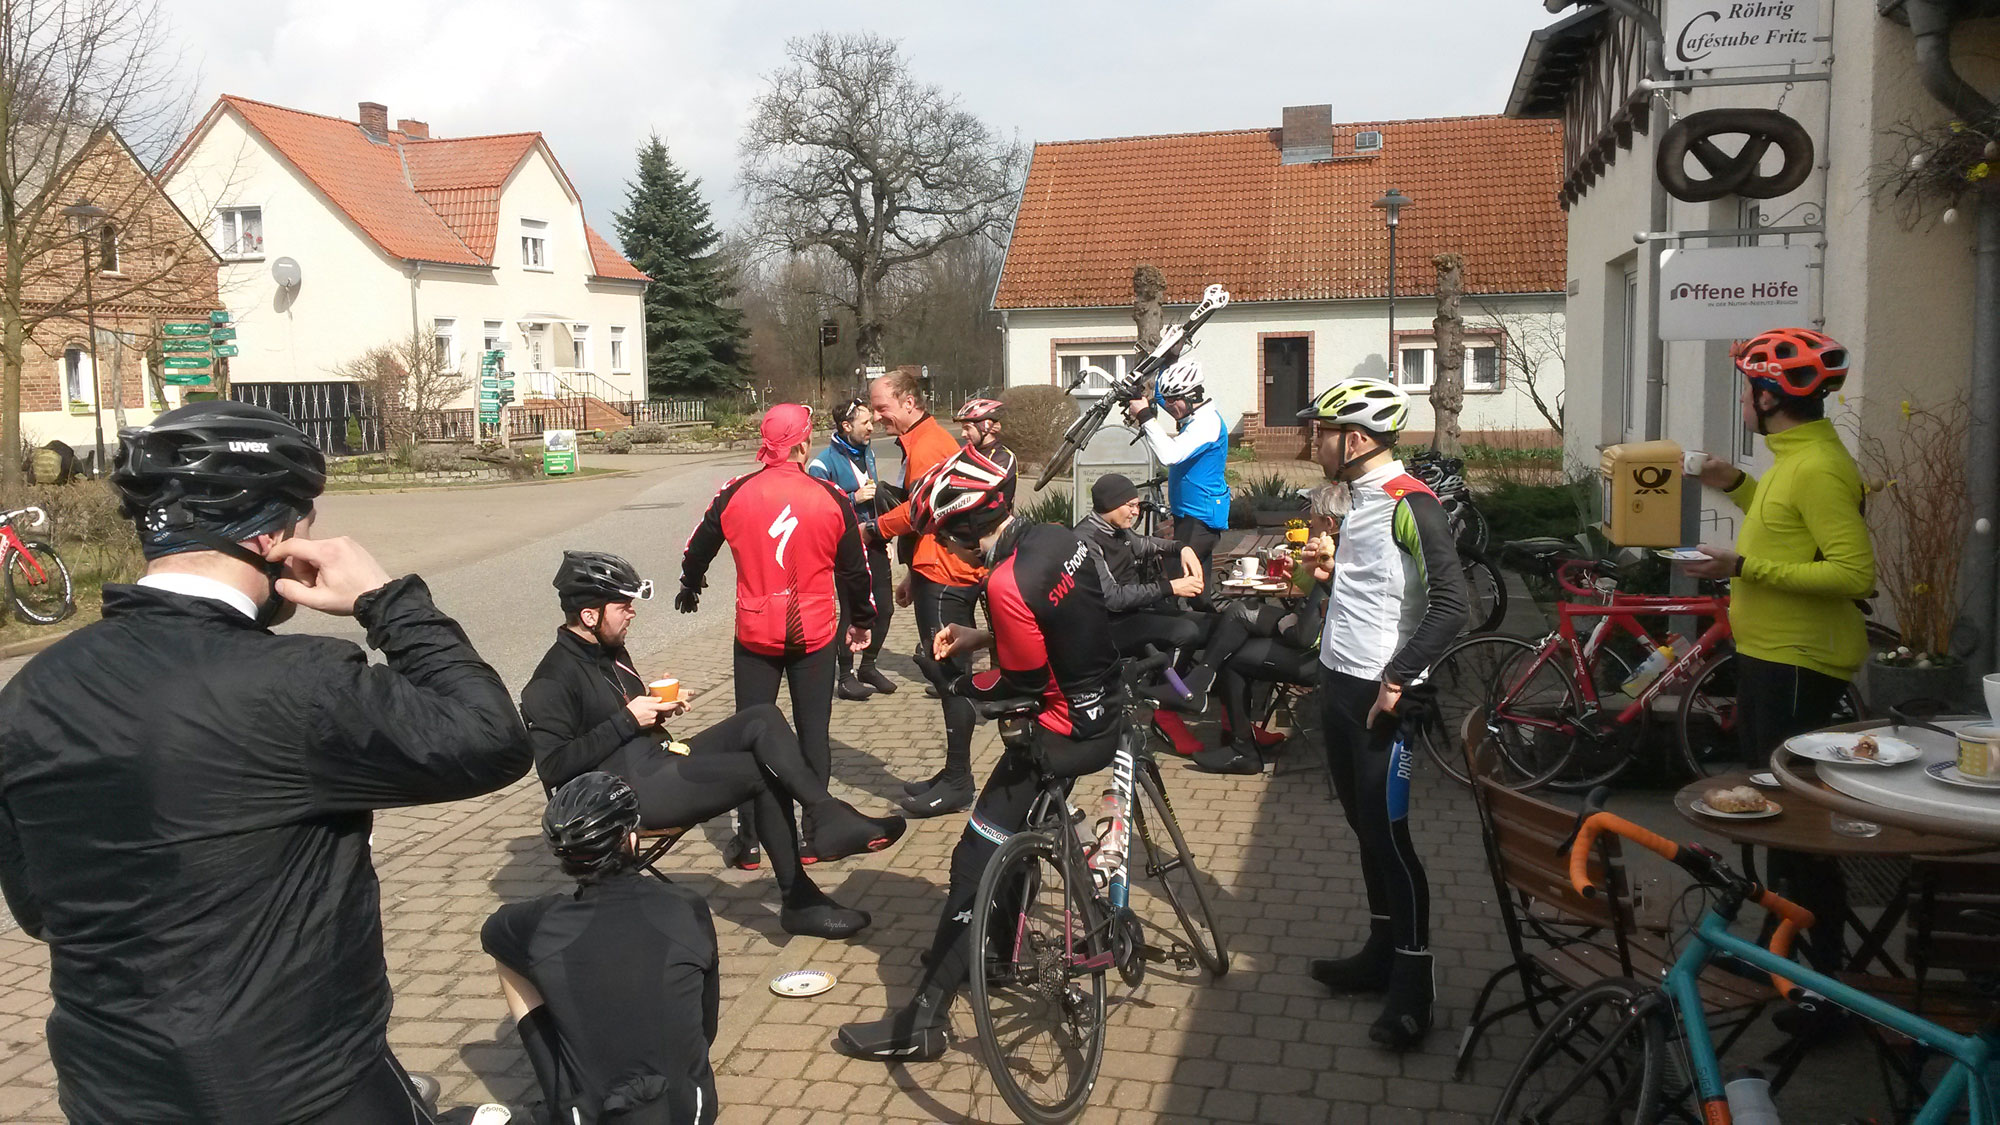 At this bakery we ran (rode) into another group of cyclists. So we were about 20 cyclists eating cake and drinking coffee there, and enjoying a few rays of sunshine.